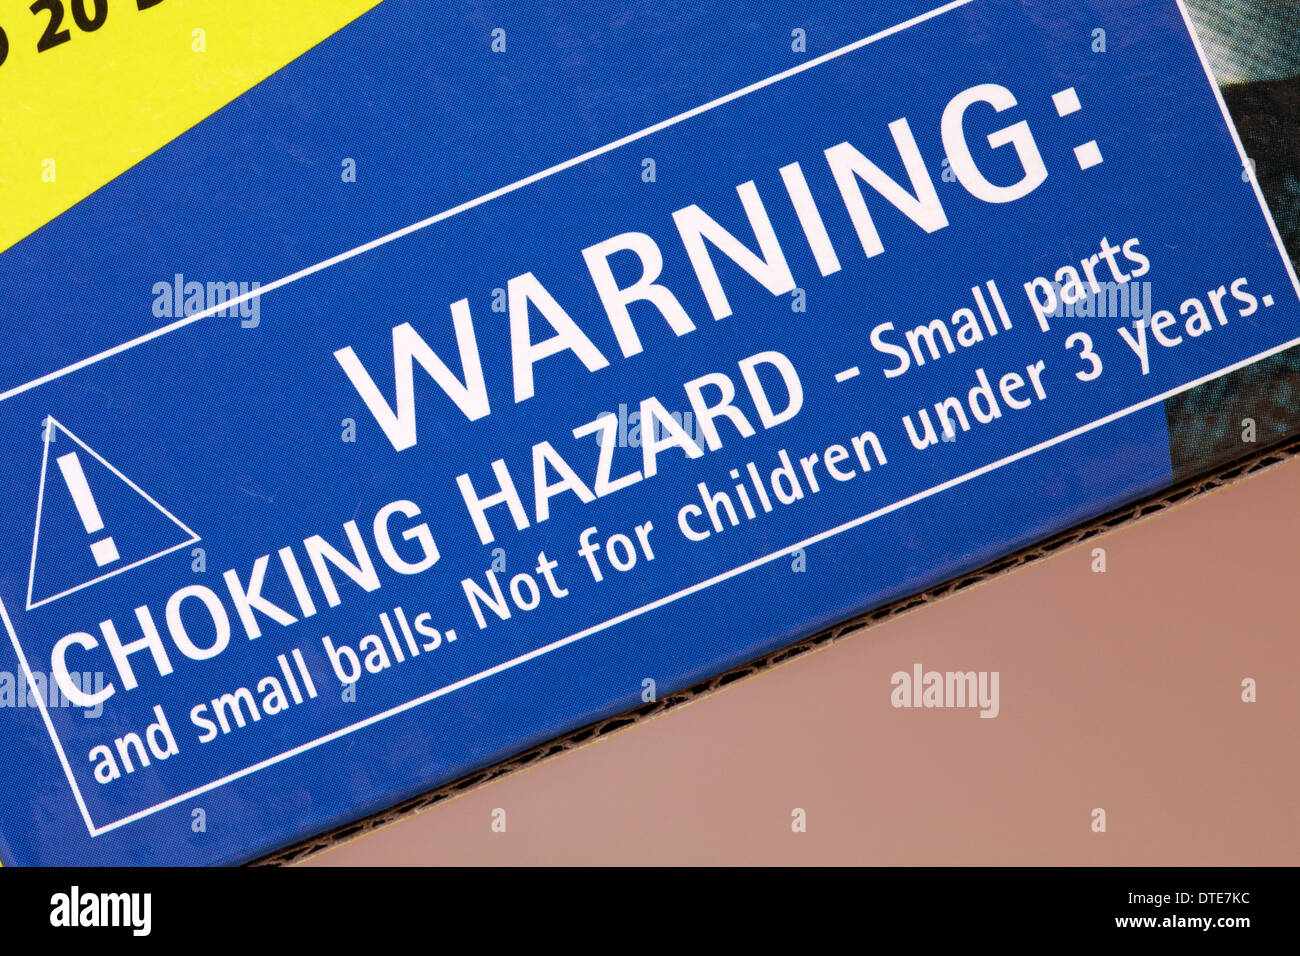 warning choking hazard small parts and small balls not for children under 3 years - information on box of children's game - Stock Image